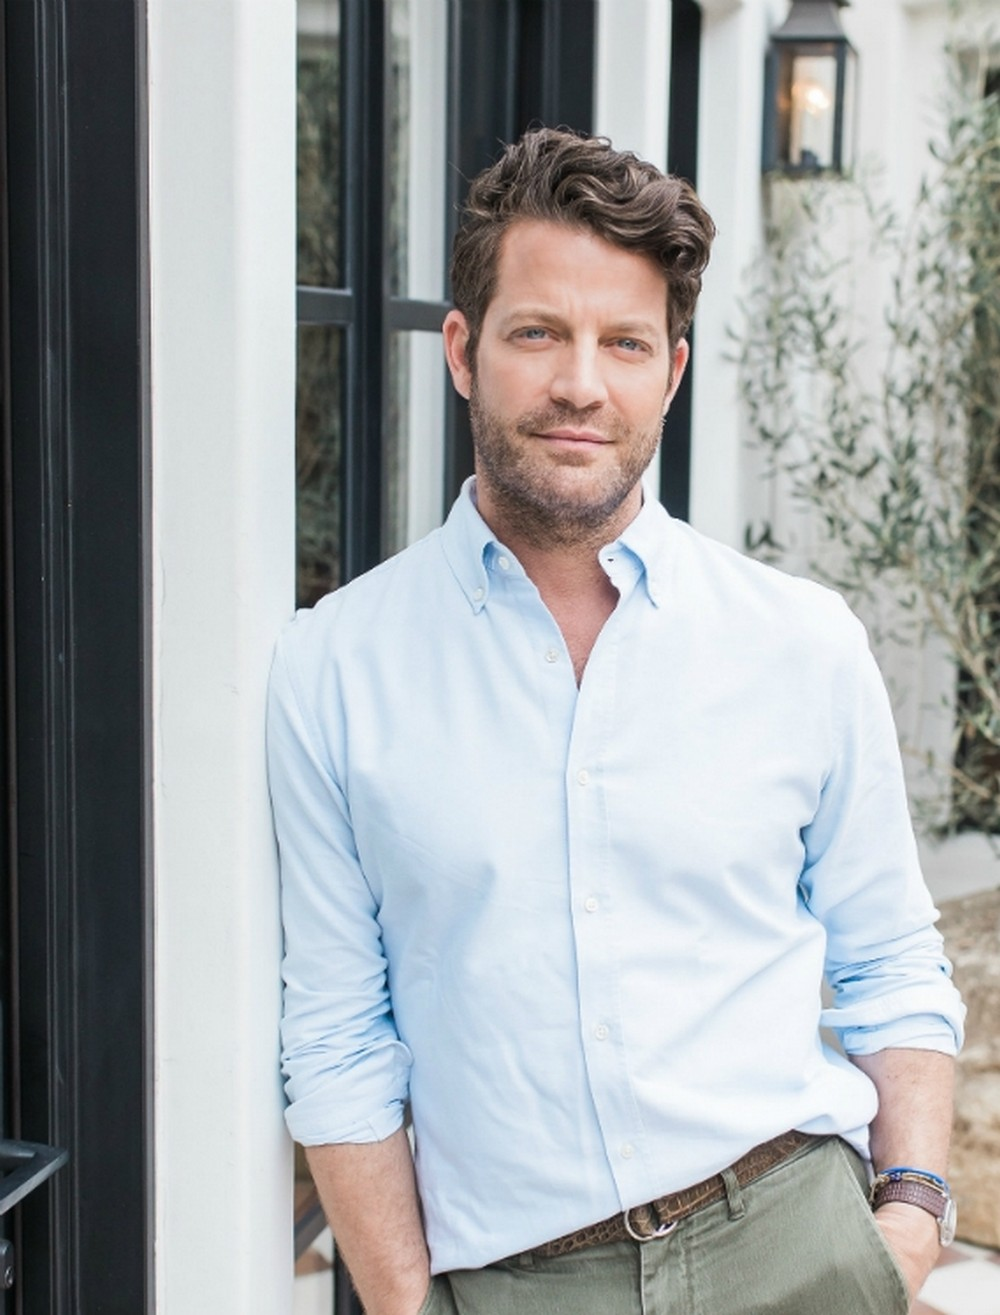 bespoke designers Feel inspired by 20 of bespoke designers from California (Part 2) Nate Berkus